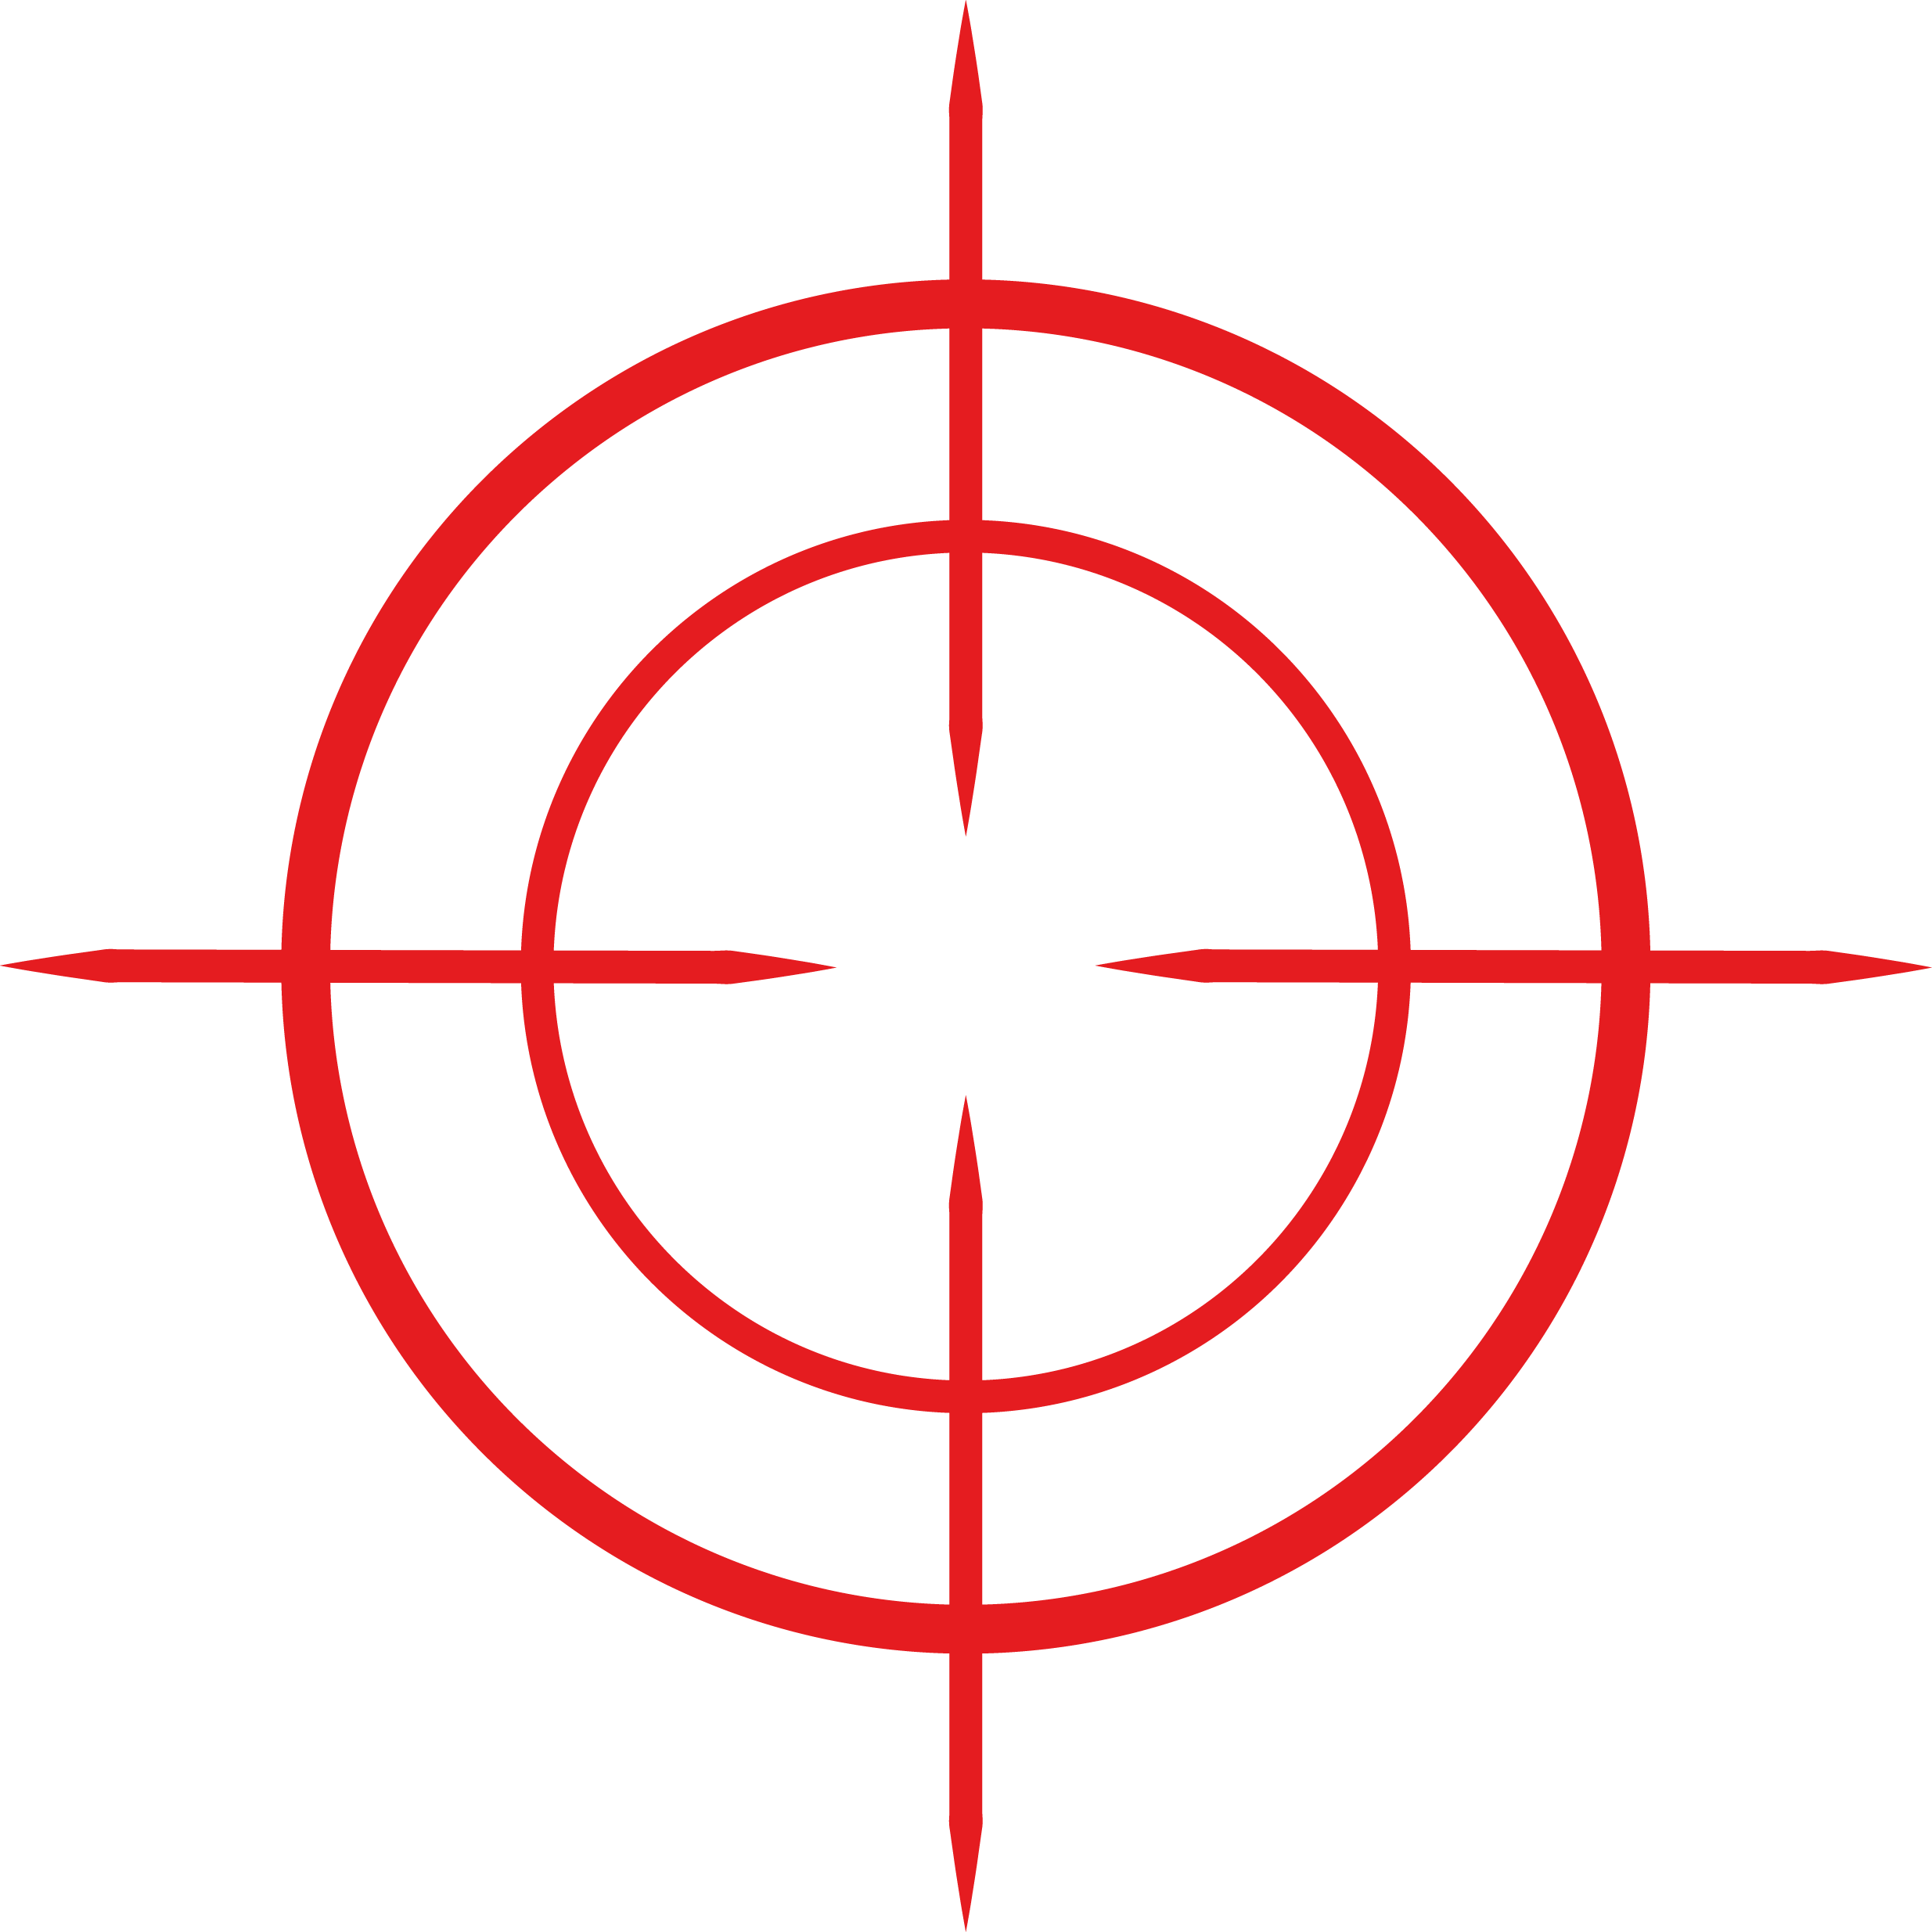 Reticle Png & Free Reticle.png Transparent Images #29439.